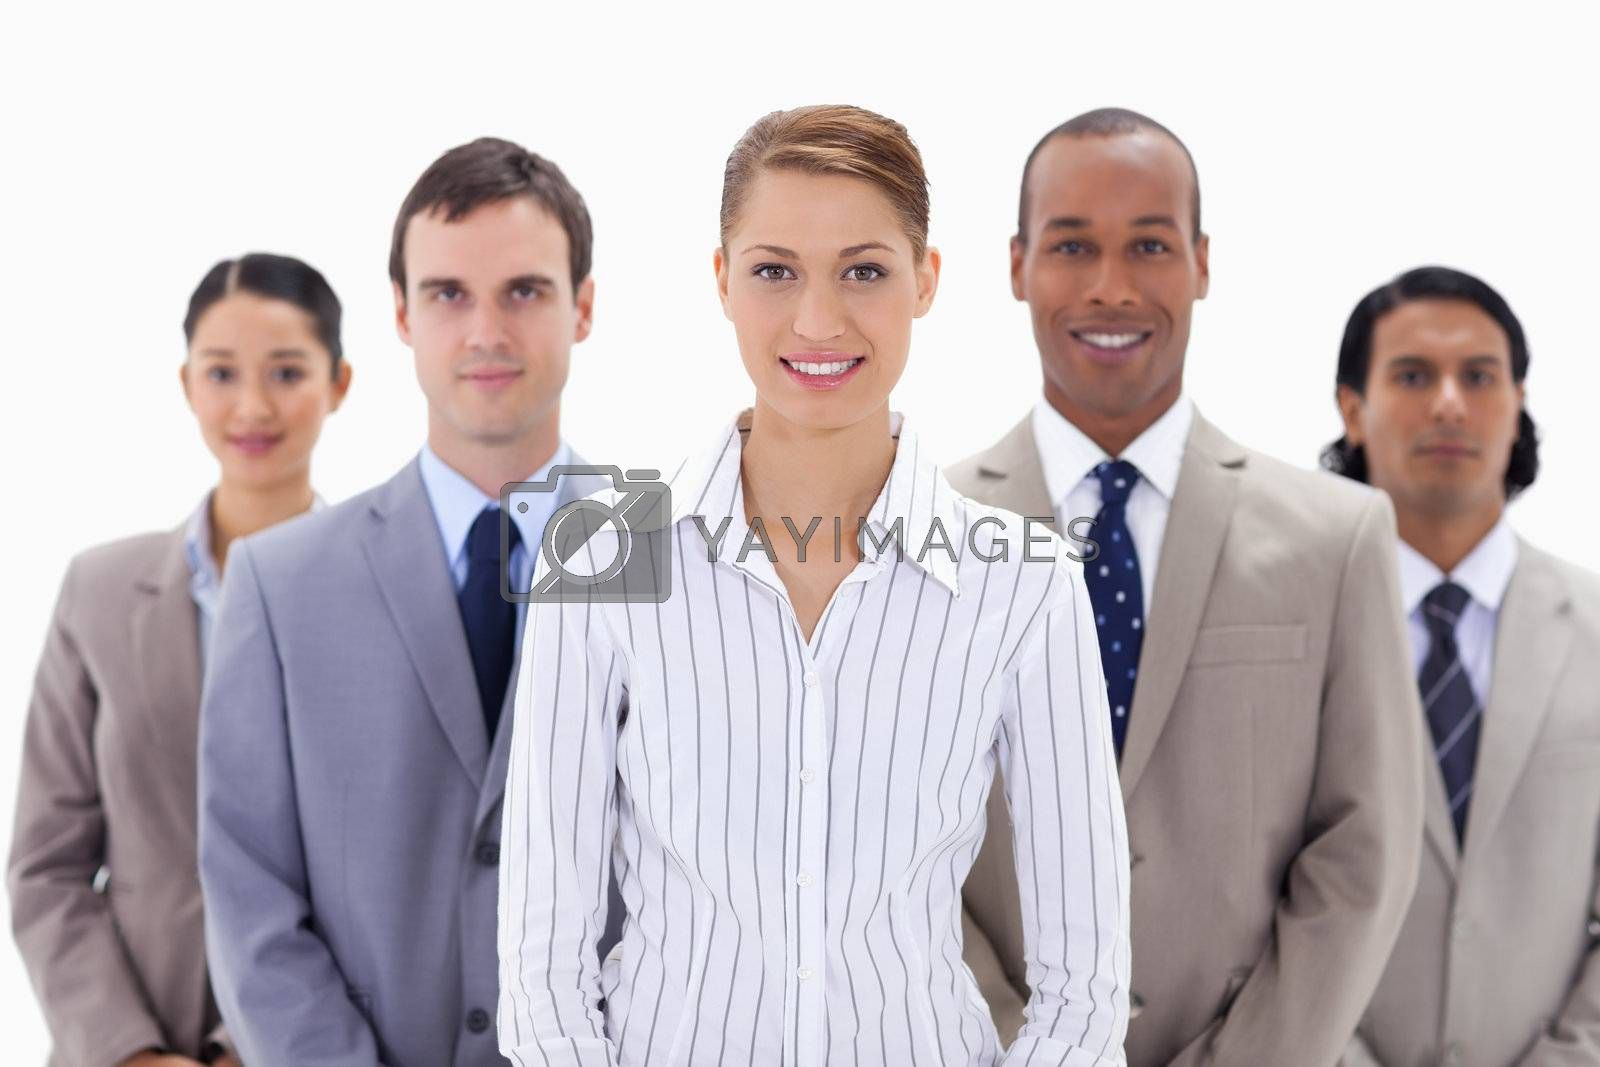 Close-up of a business team a smiling with focus on the woman in the center